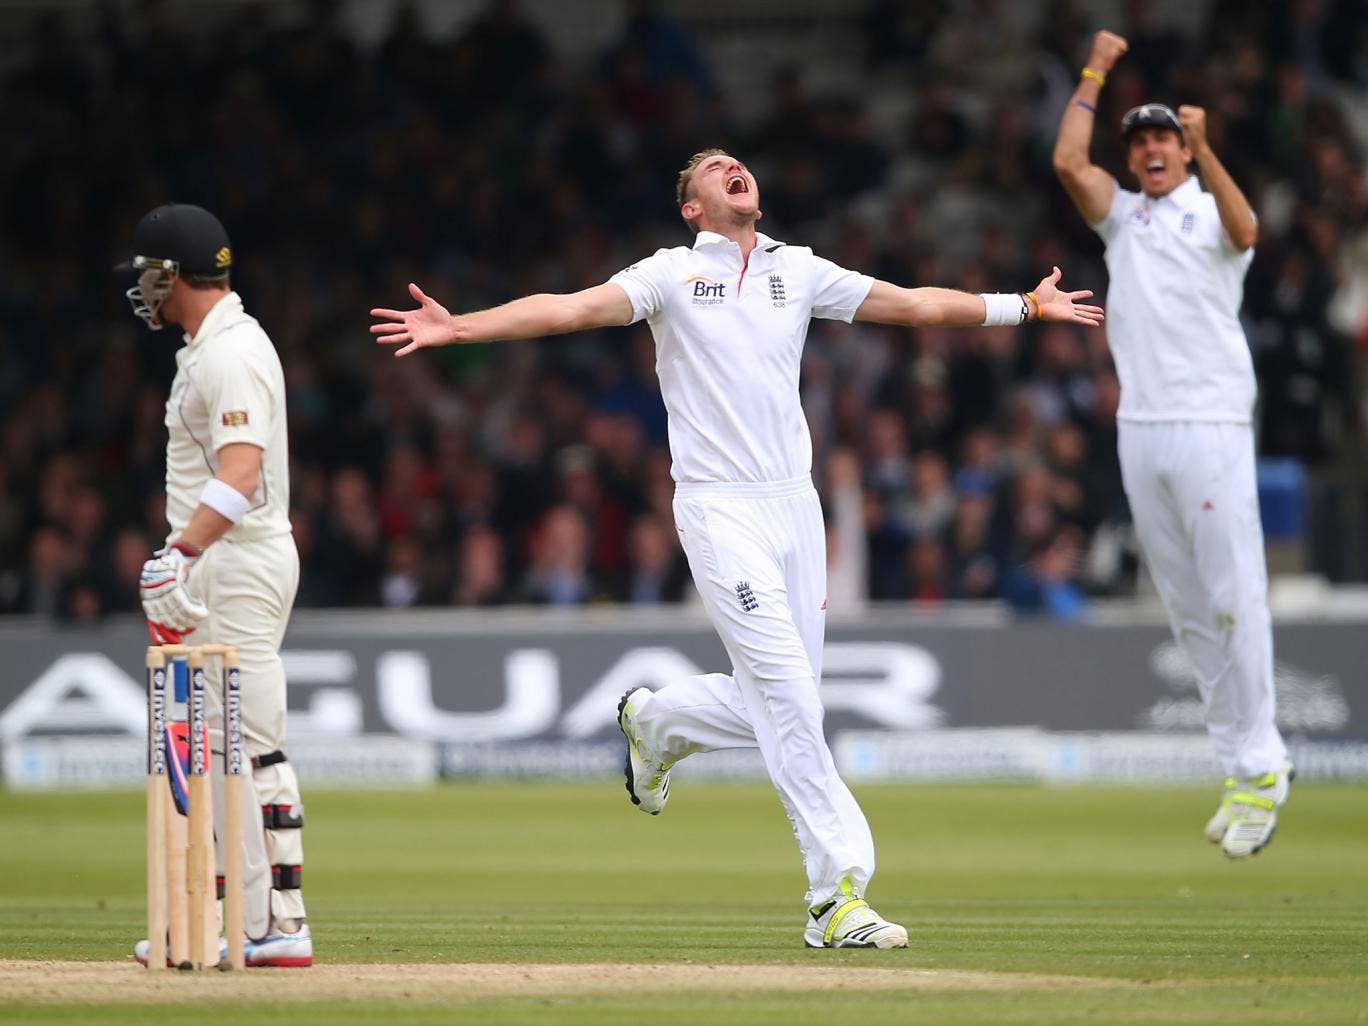 Stuart Broad of England celebrates the wicket of Brendon McCullum of New Zealand